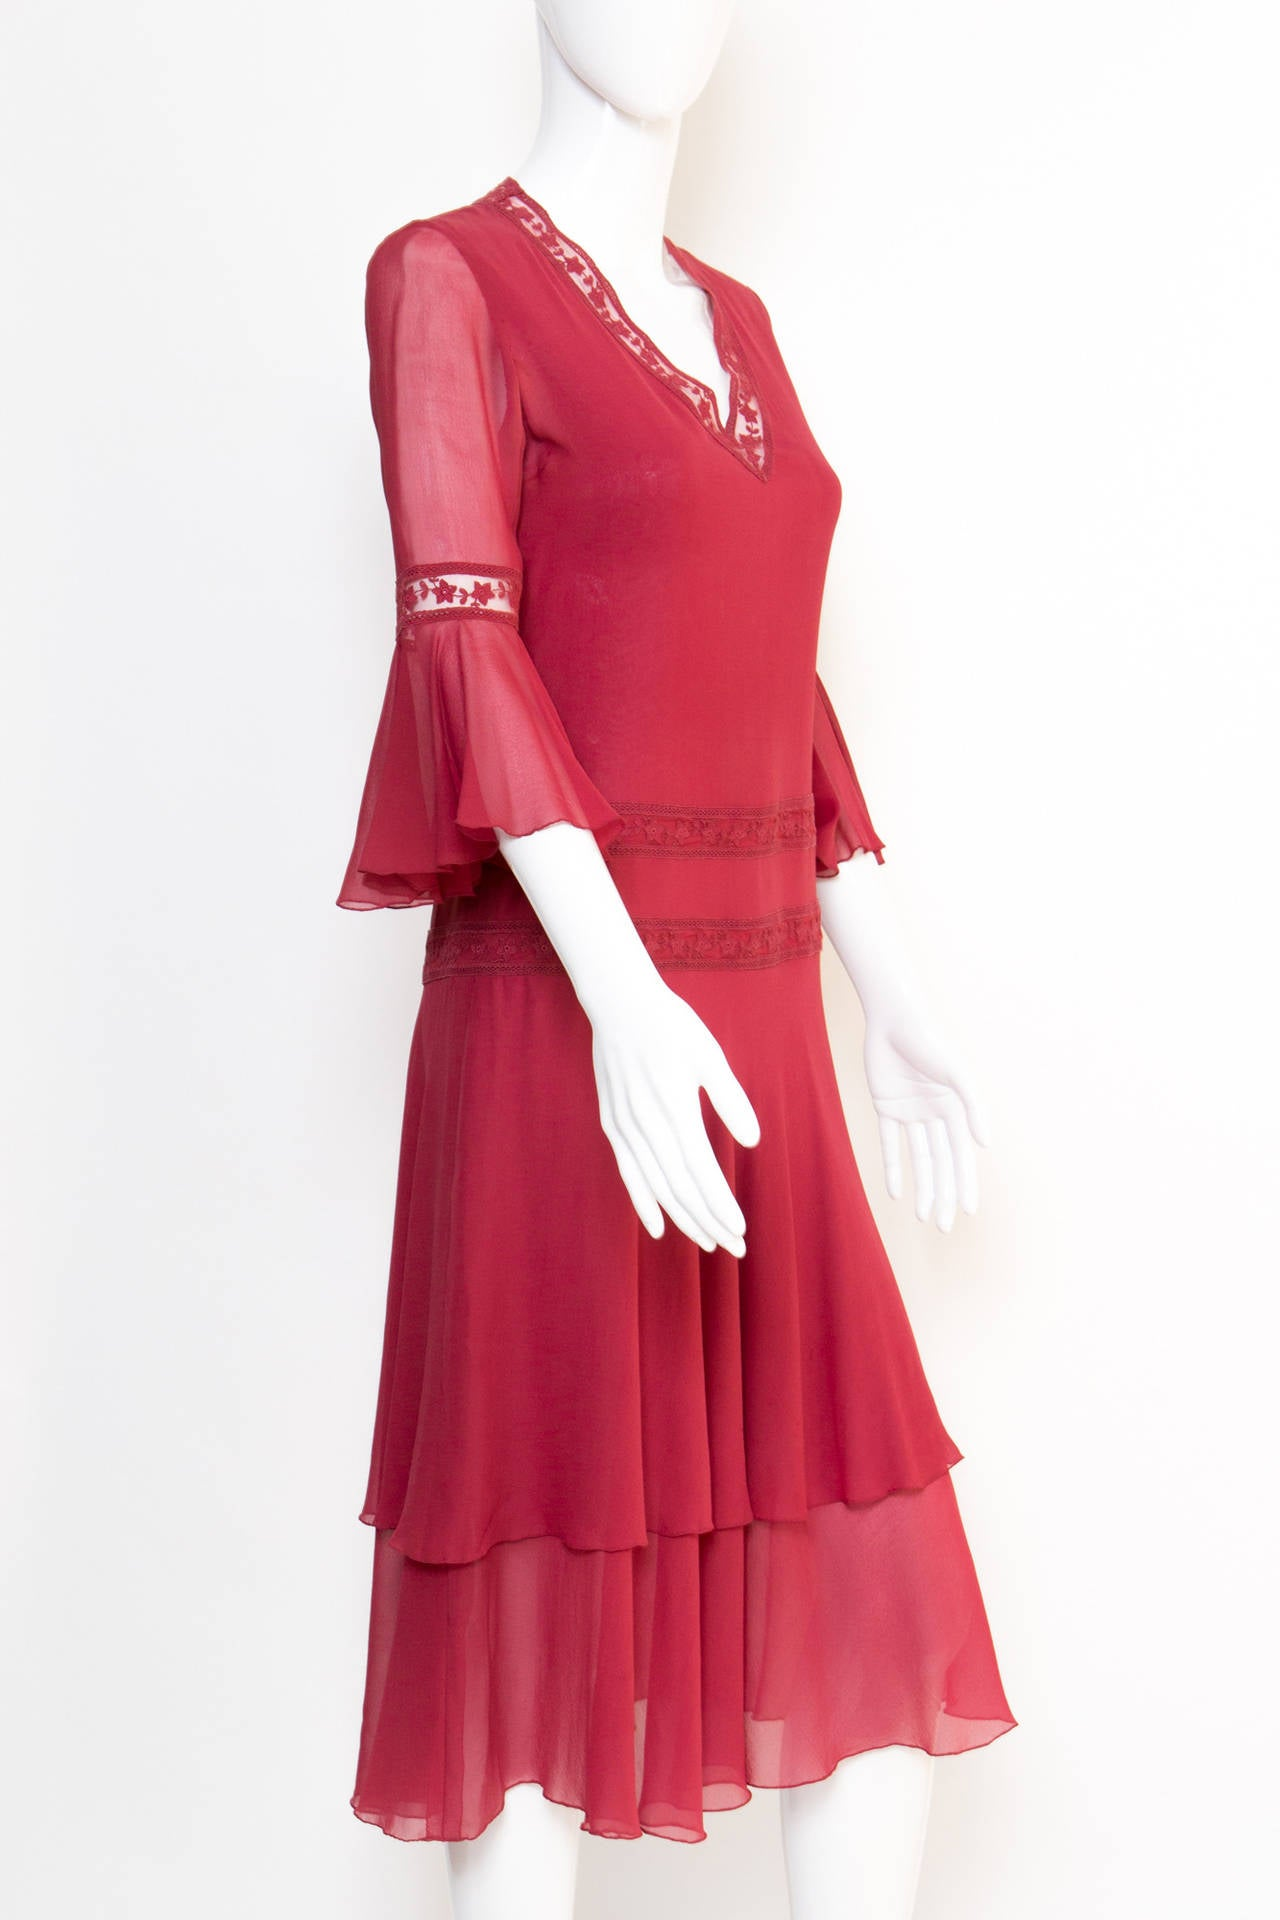 1970s Valentino Red  Wine Cocktail Dress 3